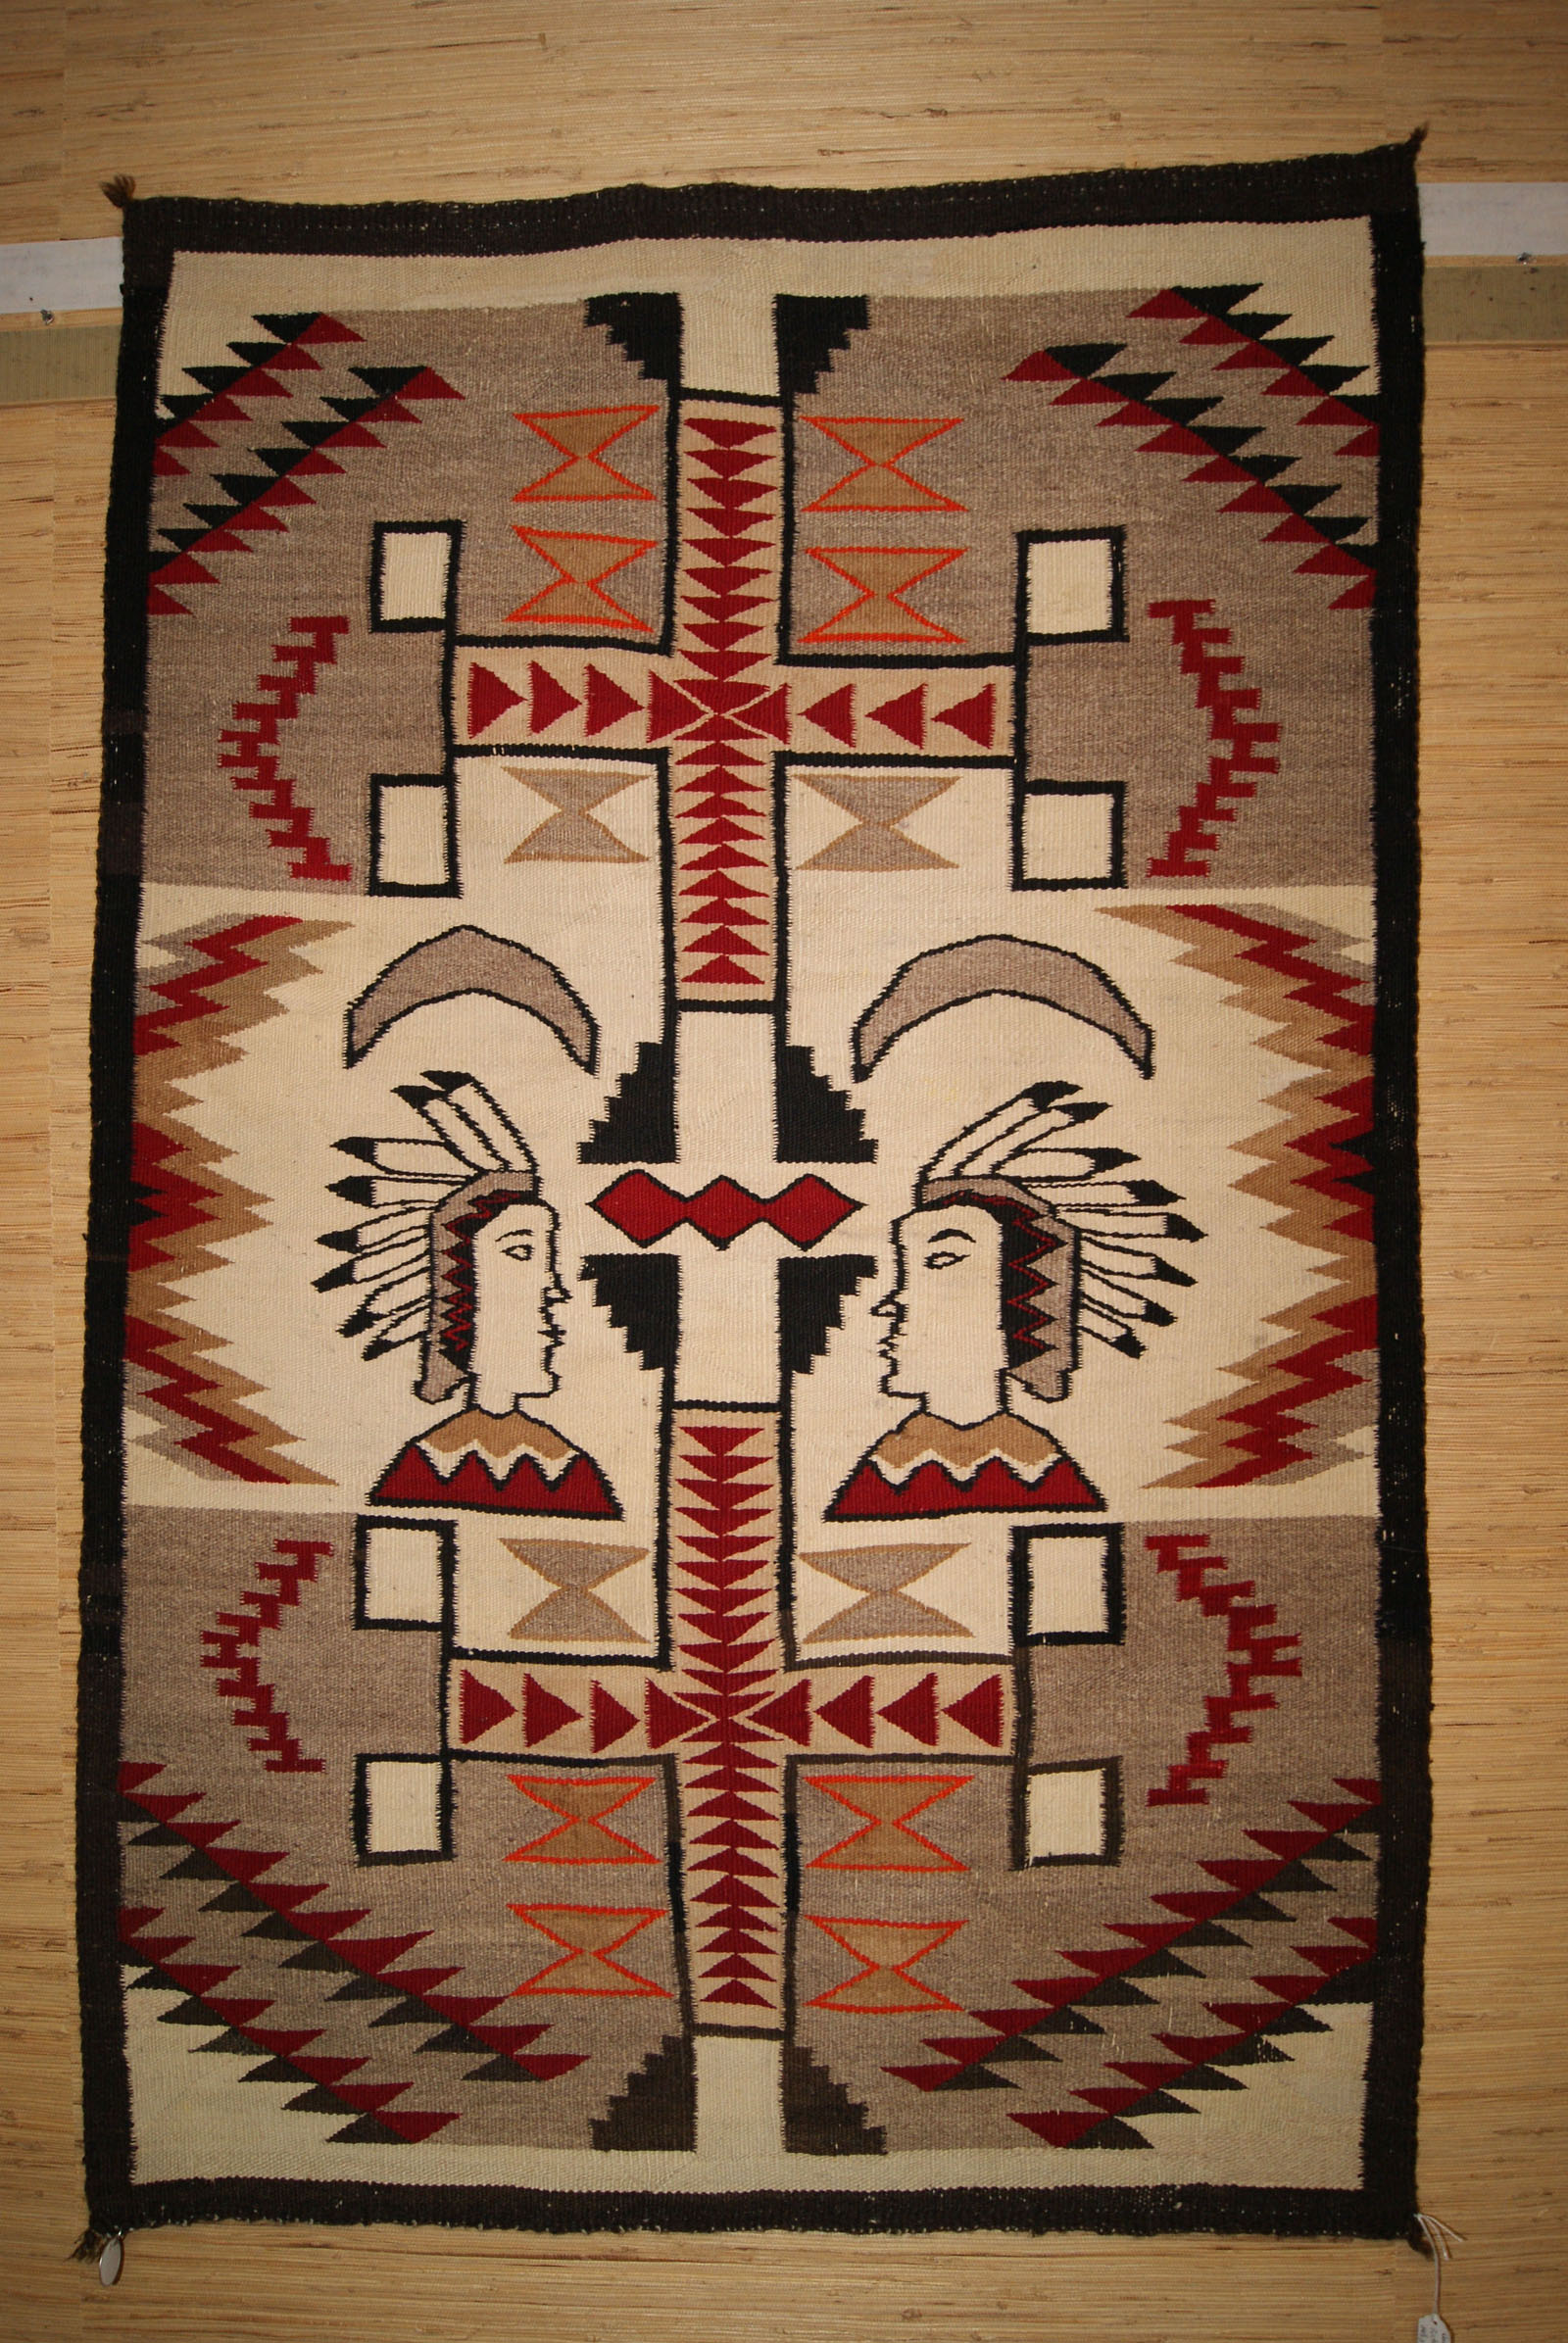 Vintage Retro Frames likewise Maxresdefault additionally Navajo Double Saddle Blanket Large additionally P as well Picture. on b